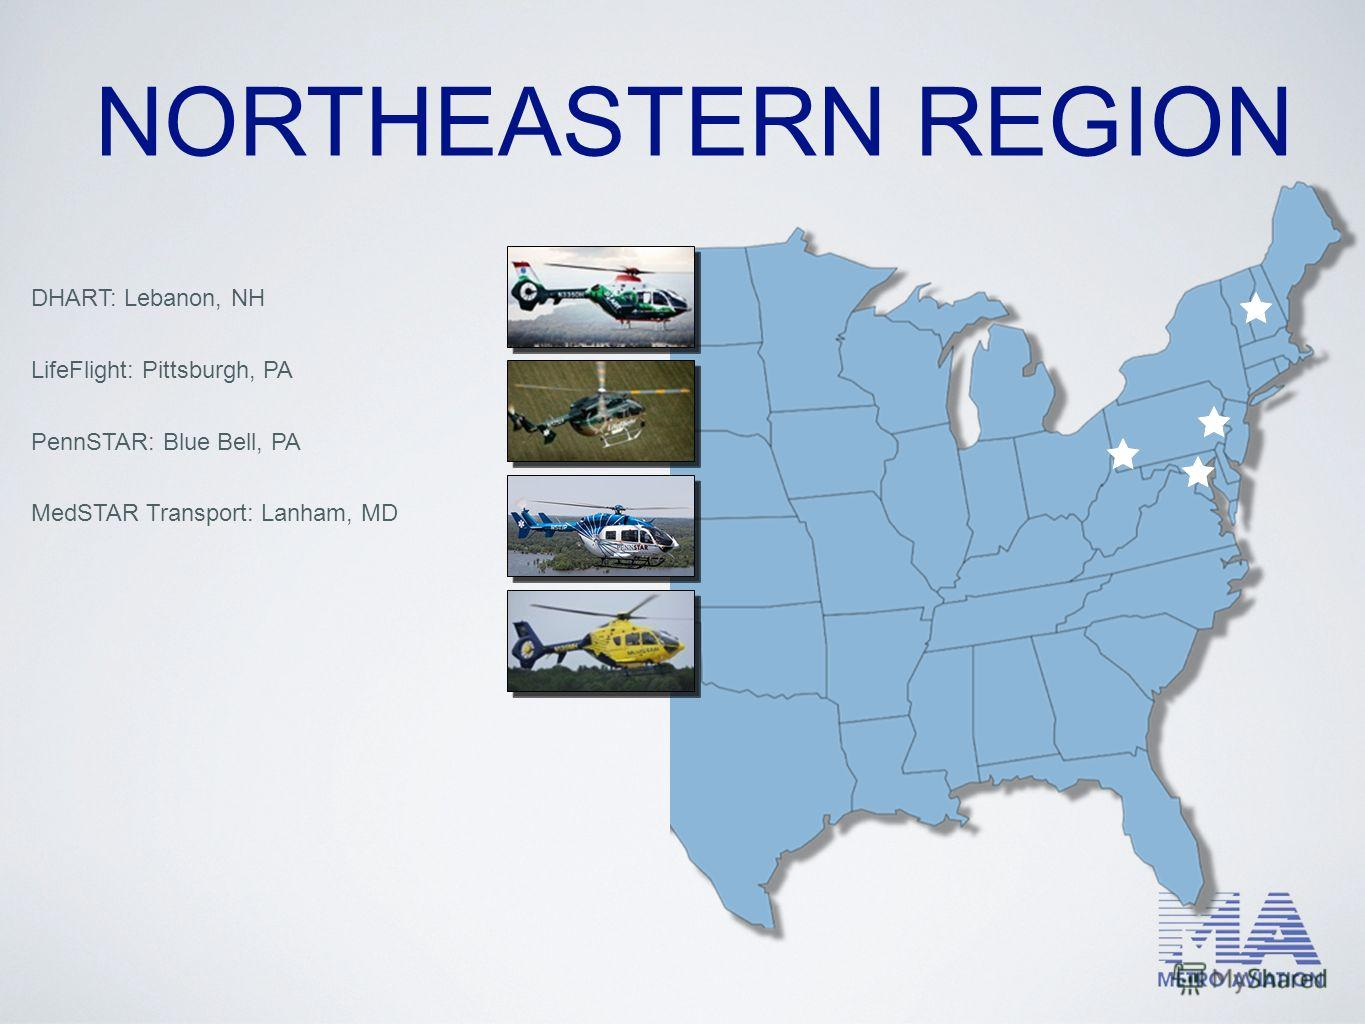 DHART: Lebanon, NH LifeFlight: Pittsburgh, PA PennSTAR: Blue Bell, PA MedSTAR Transport: Lanham, MD NORTHEASTERN REGION